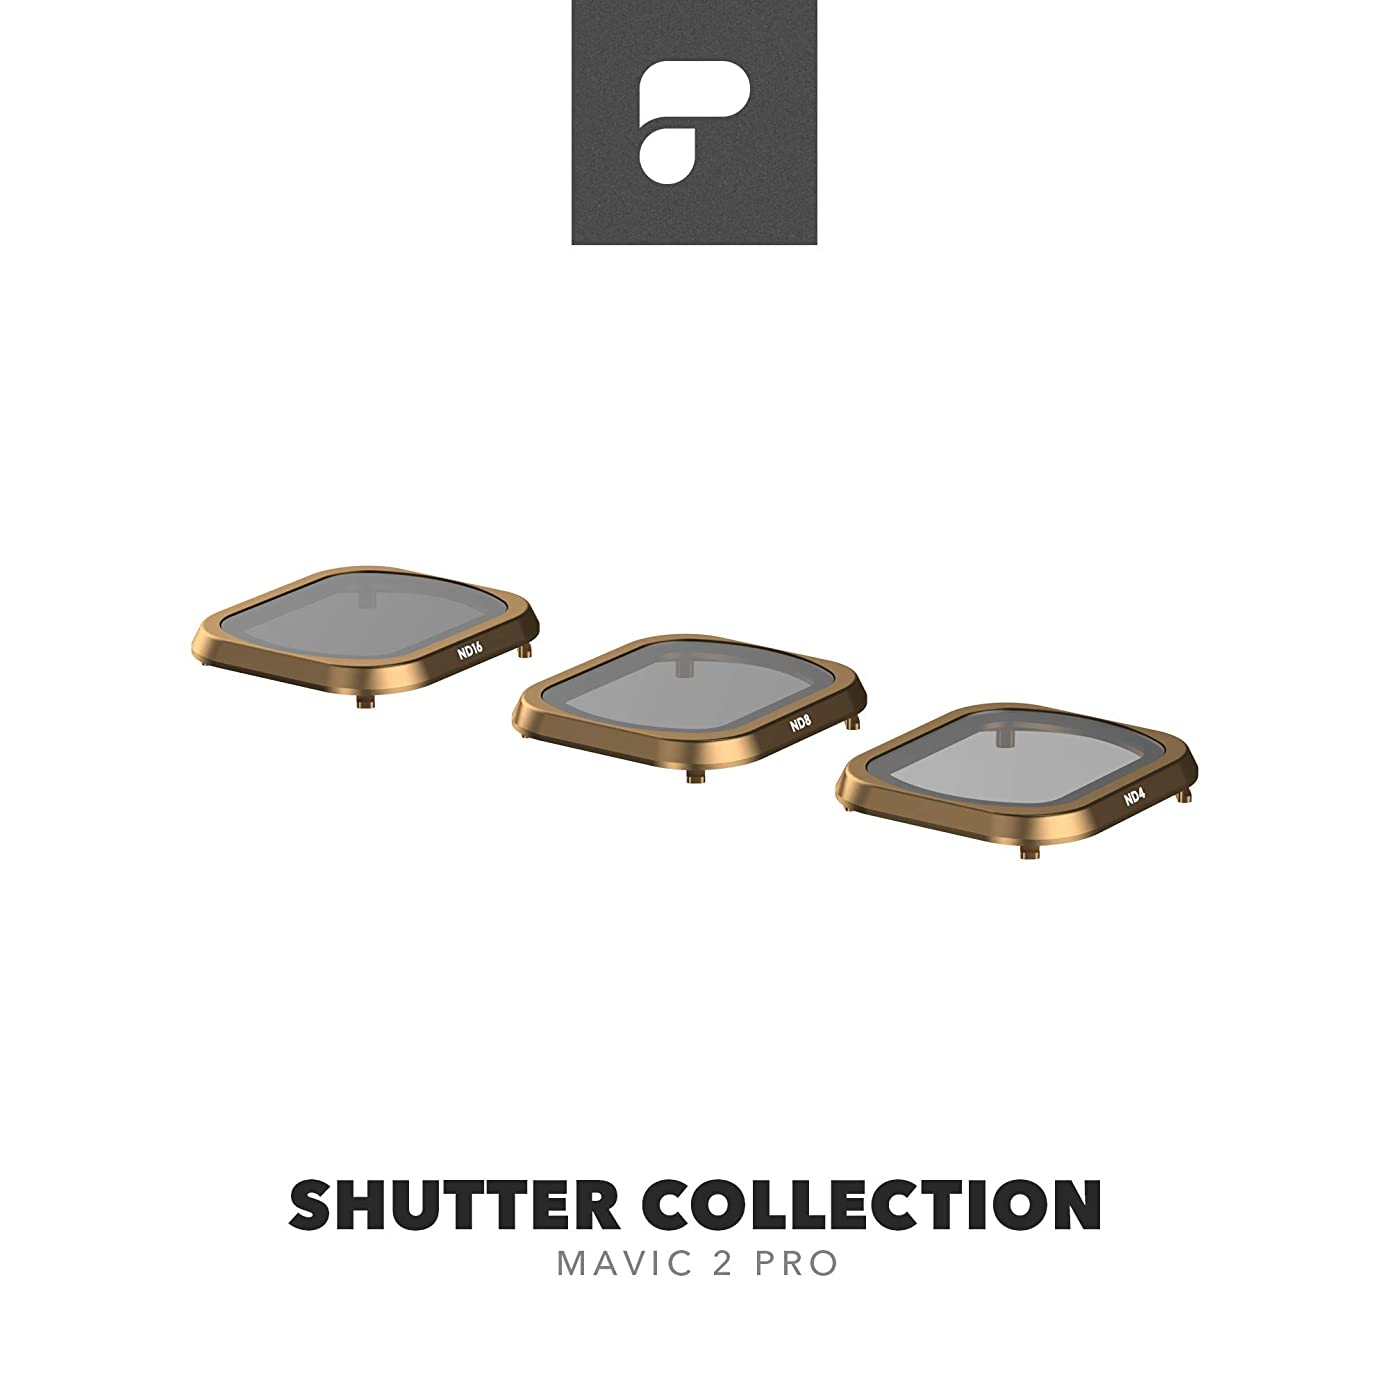 PolarPro Shutter Collection (ND4, ND8, ND16 Mavic 2 Filters) for DJI Mavic 2 Pro